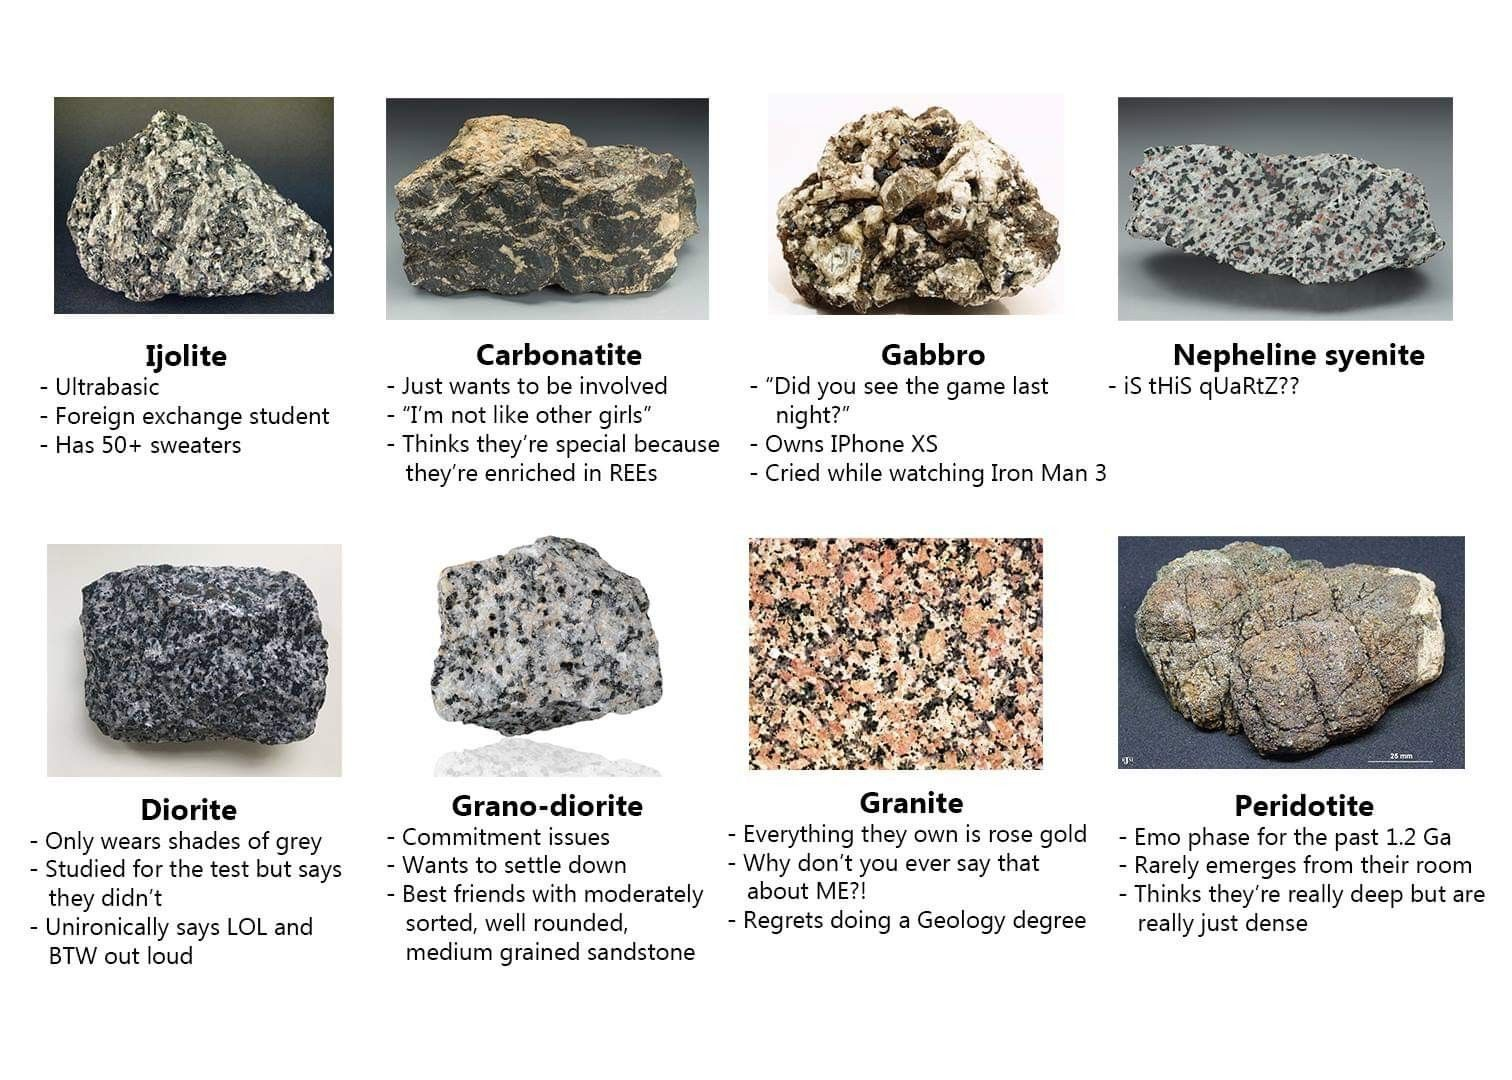 Pin by Bryn Mawr College Mineralogy on Geology Memes | Girls night, Iron man 3, Geology